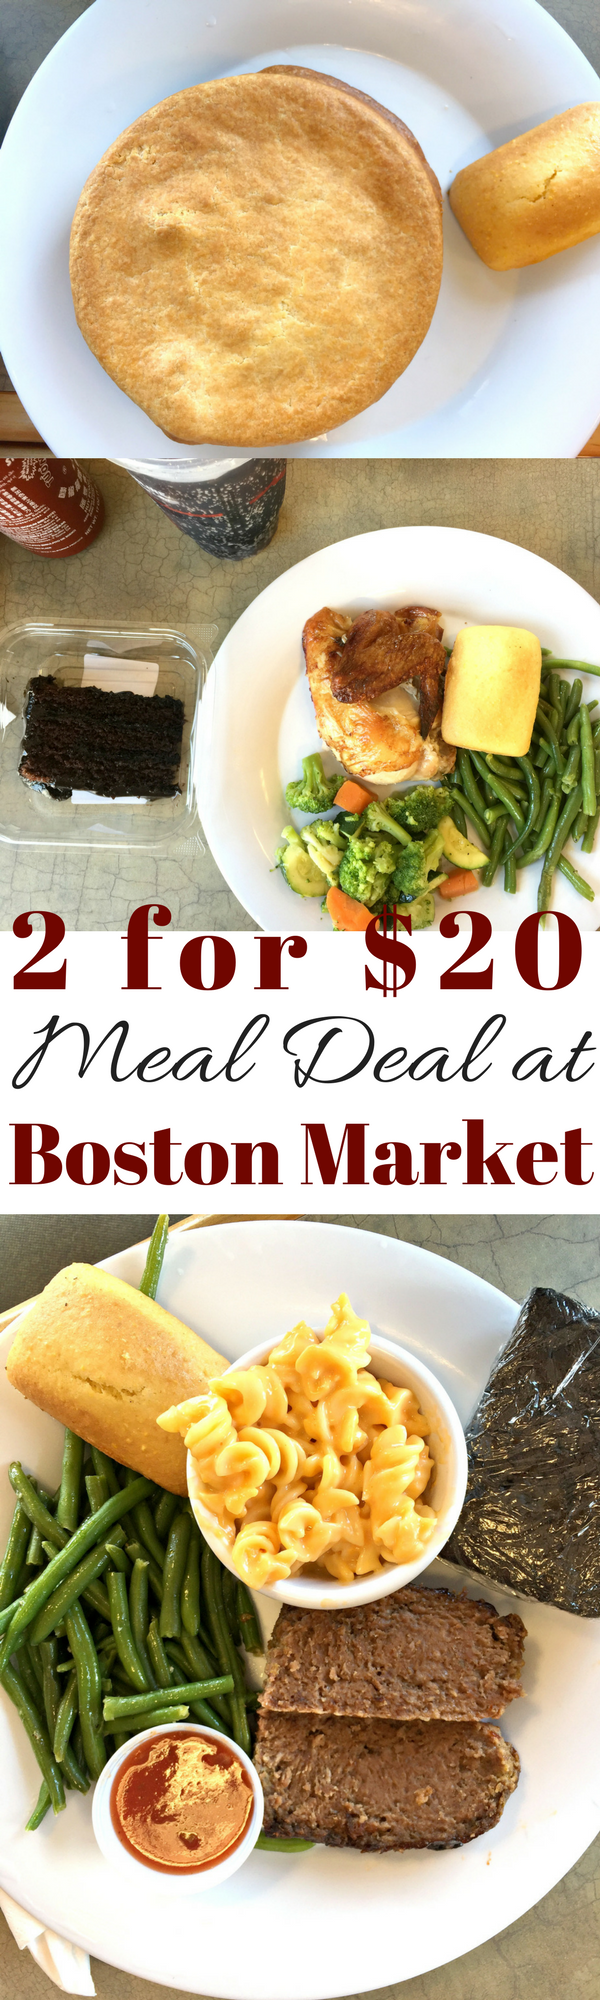 Take advantage of the 2 for $20 meal deal at Boston Market and get a night off from cooking and cleaning mom!